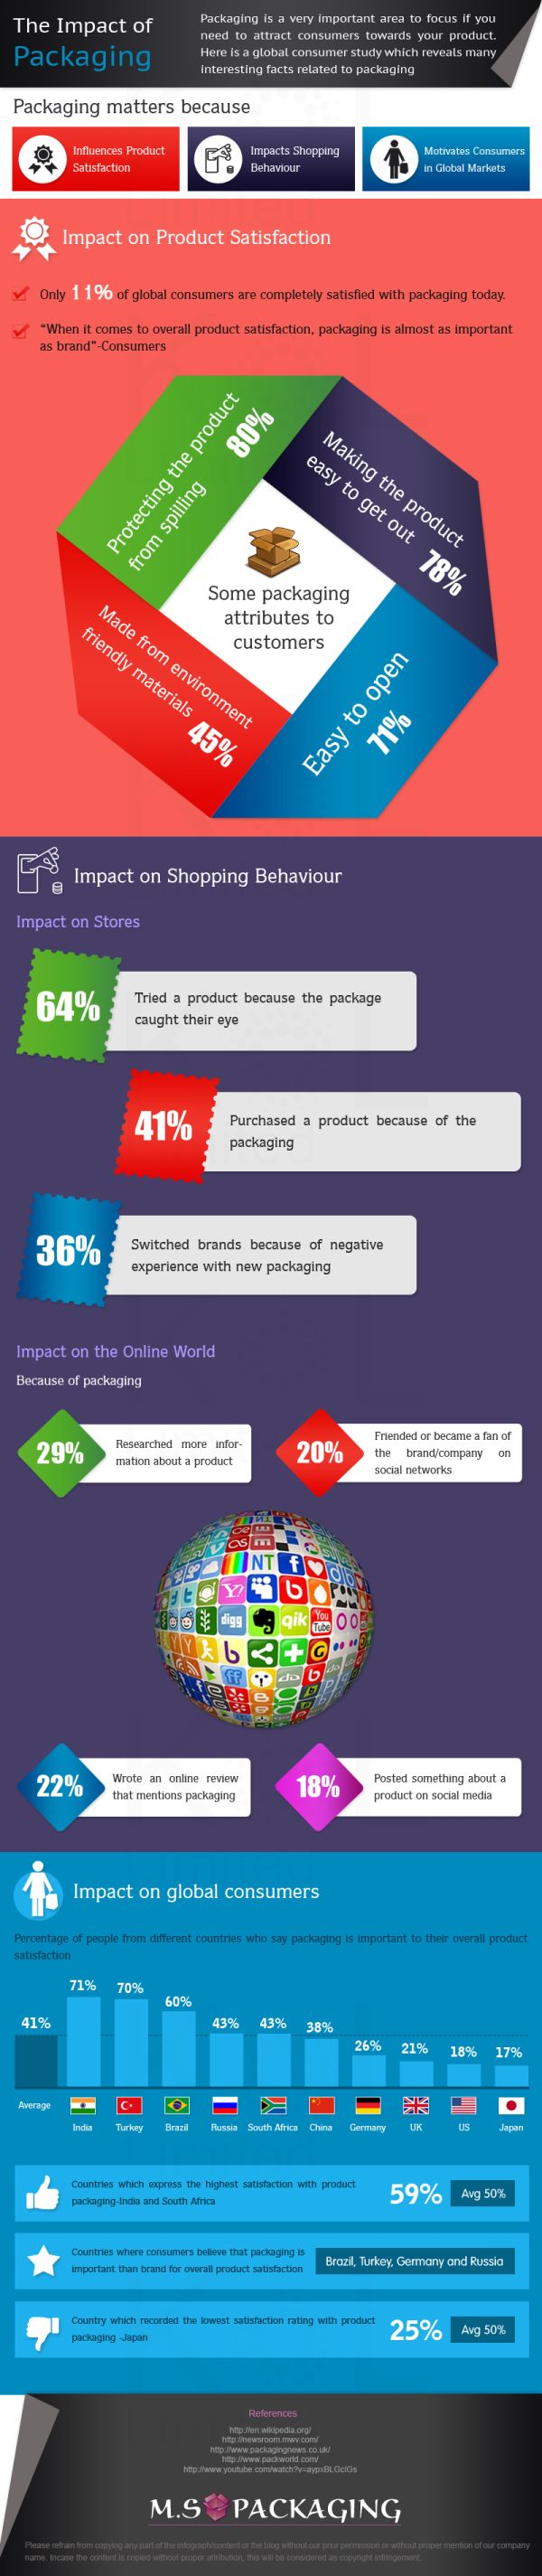 The Impact of Packaging